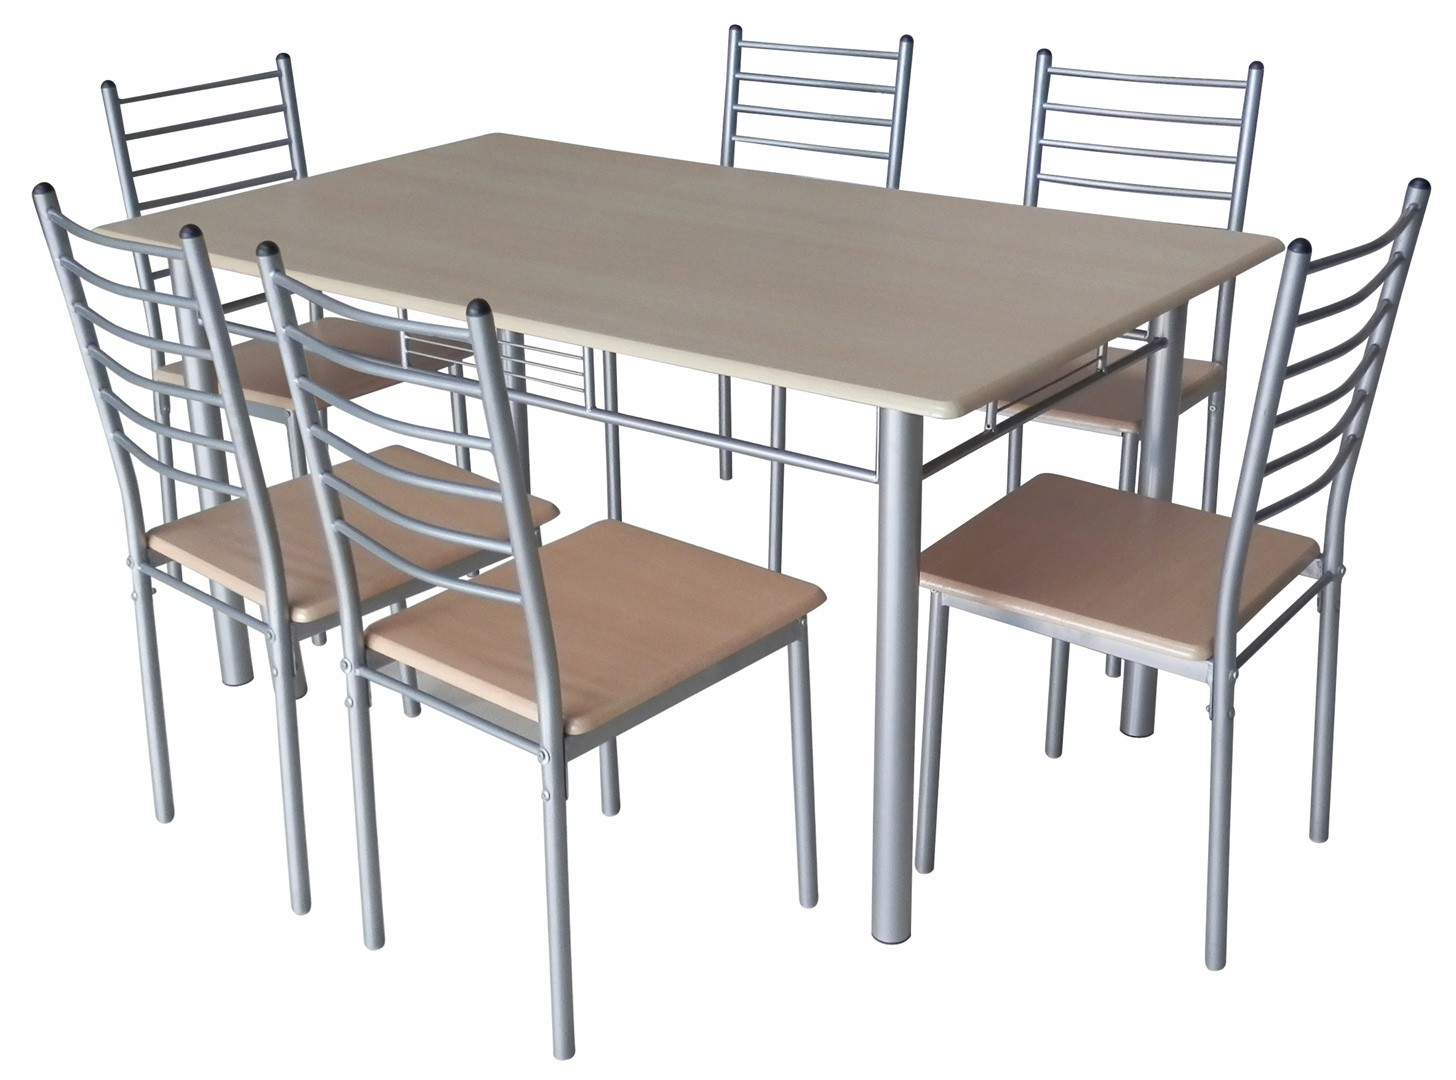 Ensemble table et chaises de cuisine but chaise id es for Table de cuisine et chaise